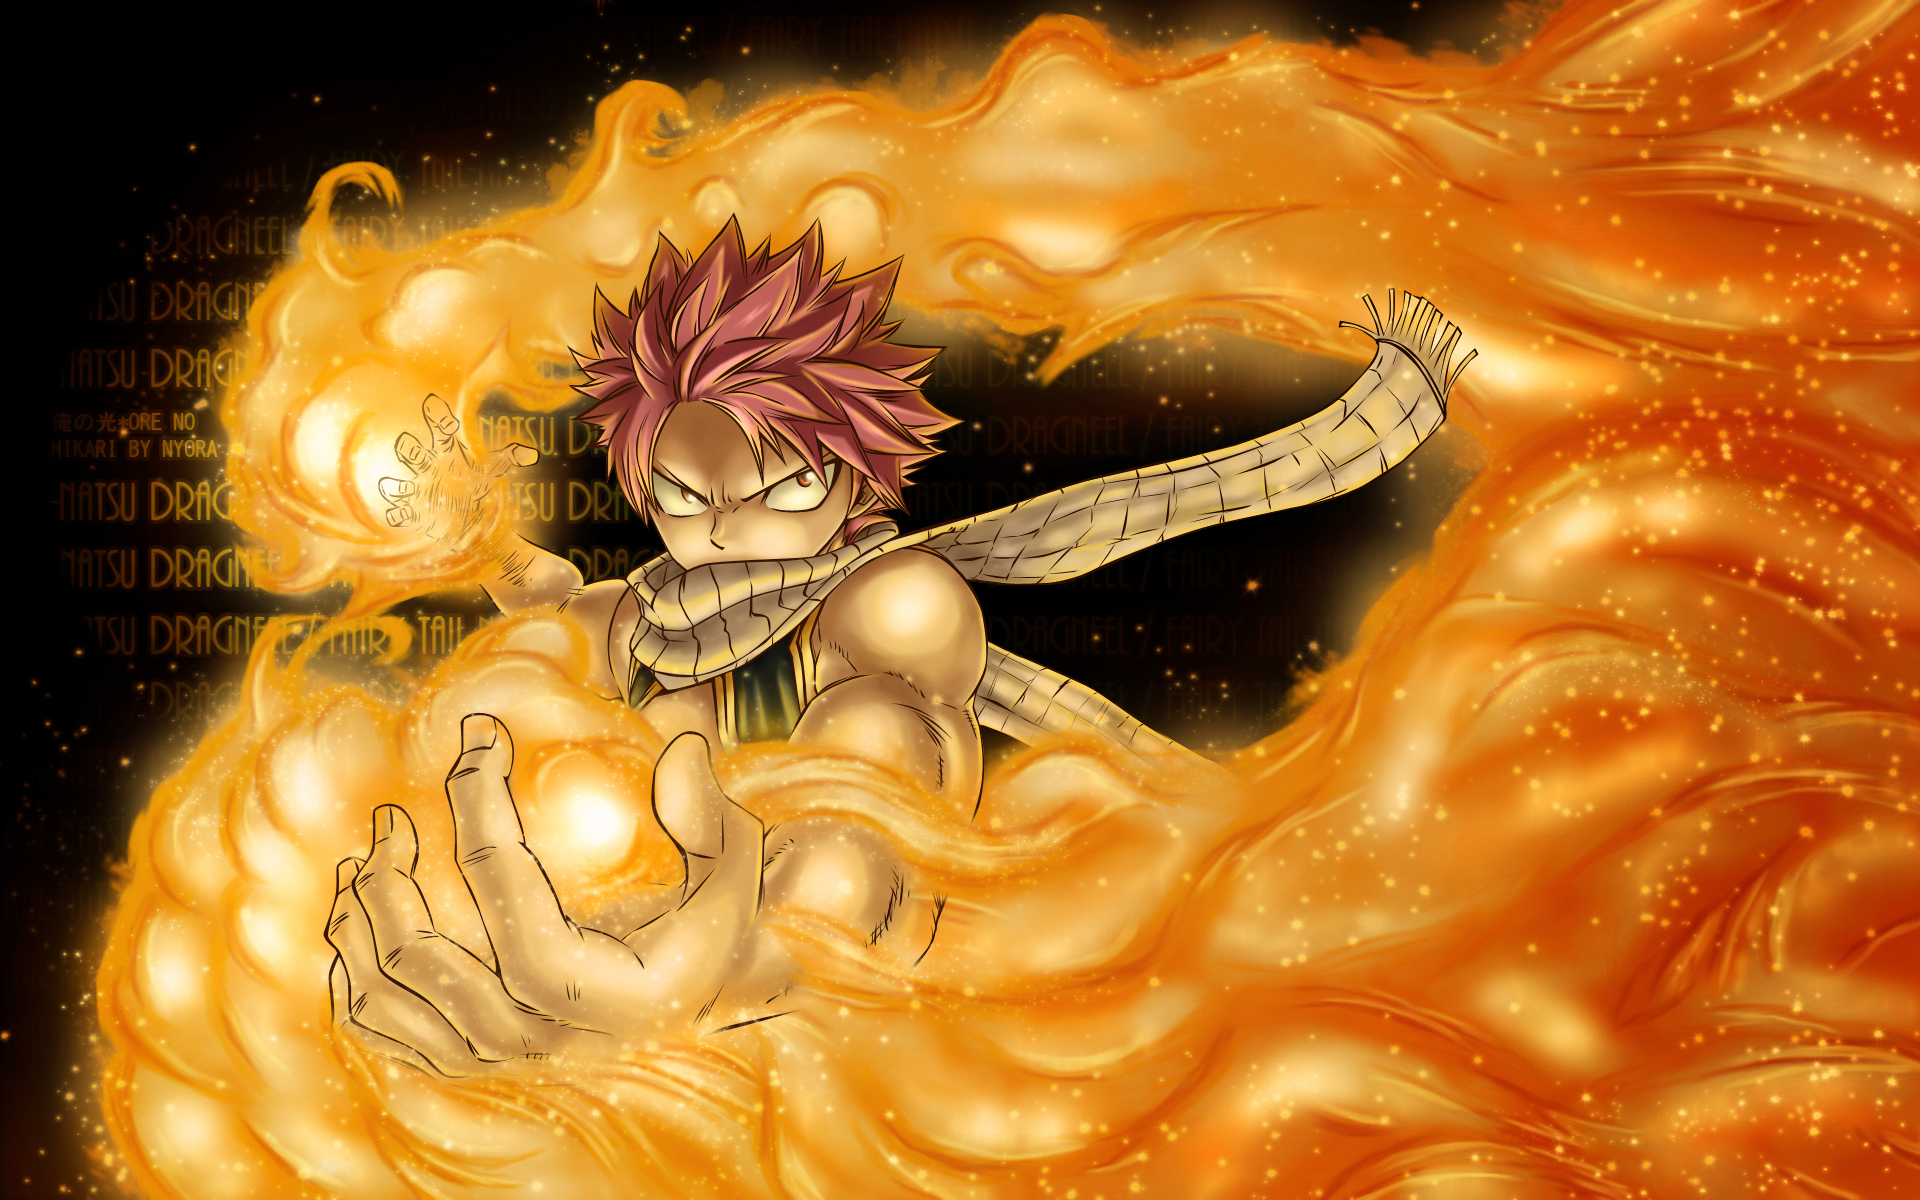 natsu dragneel fire flame fairy tail anime hd wallpaper image picture 1920x1200